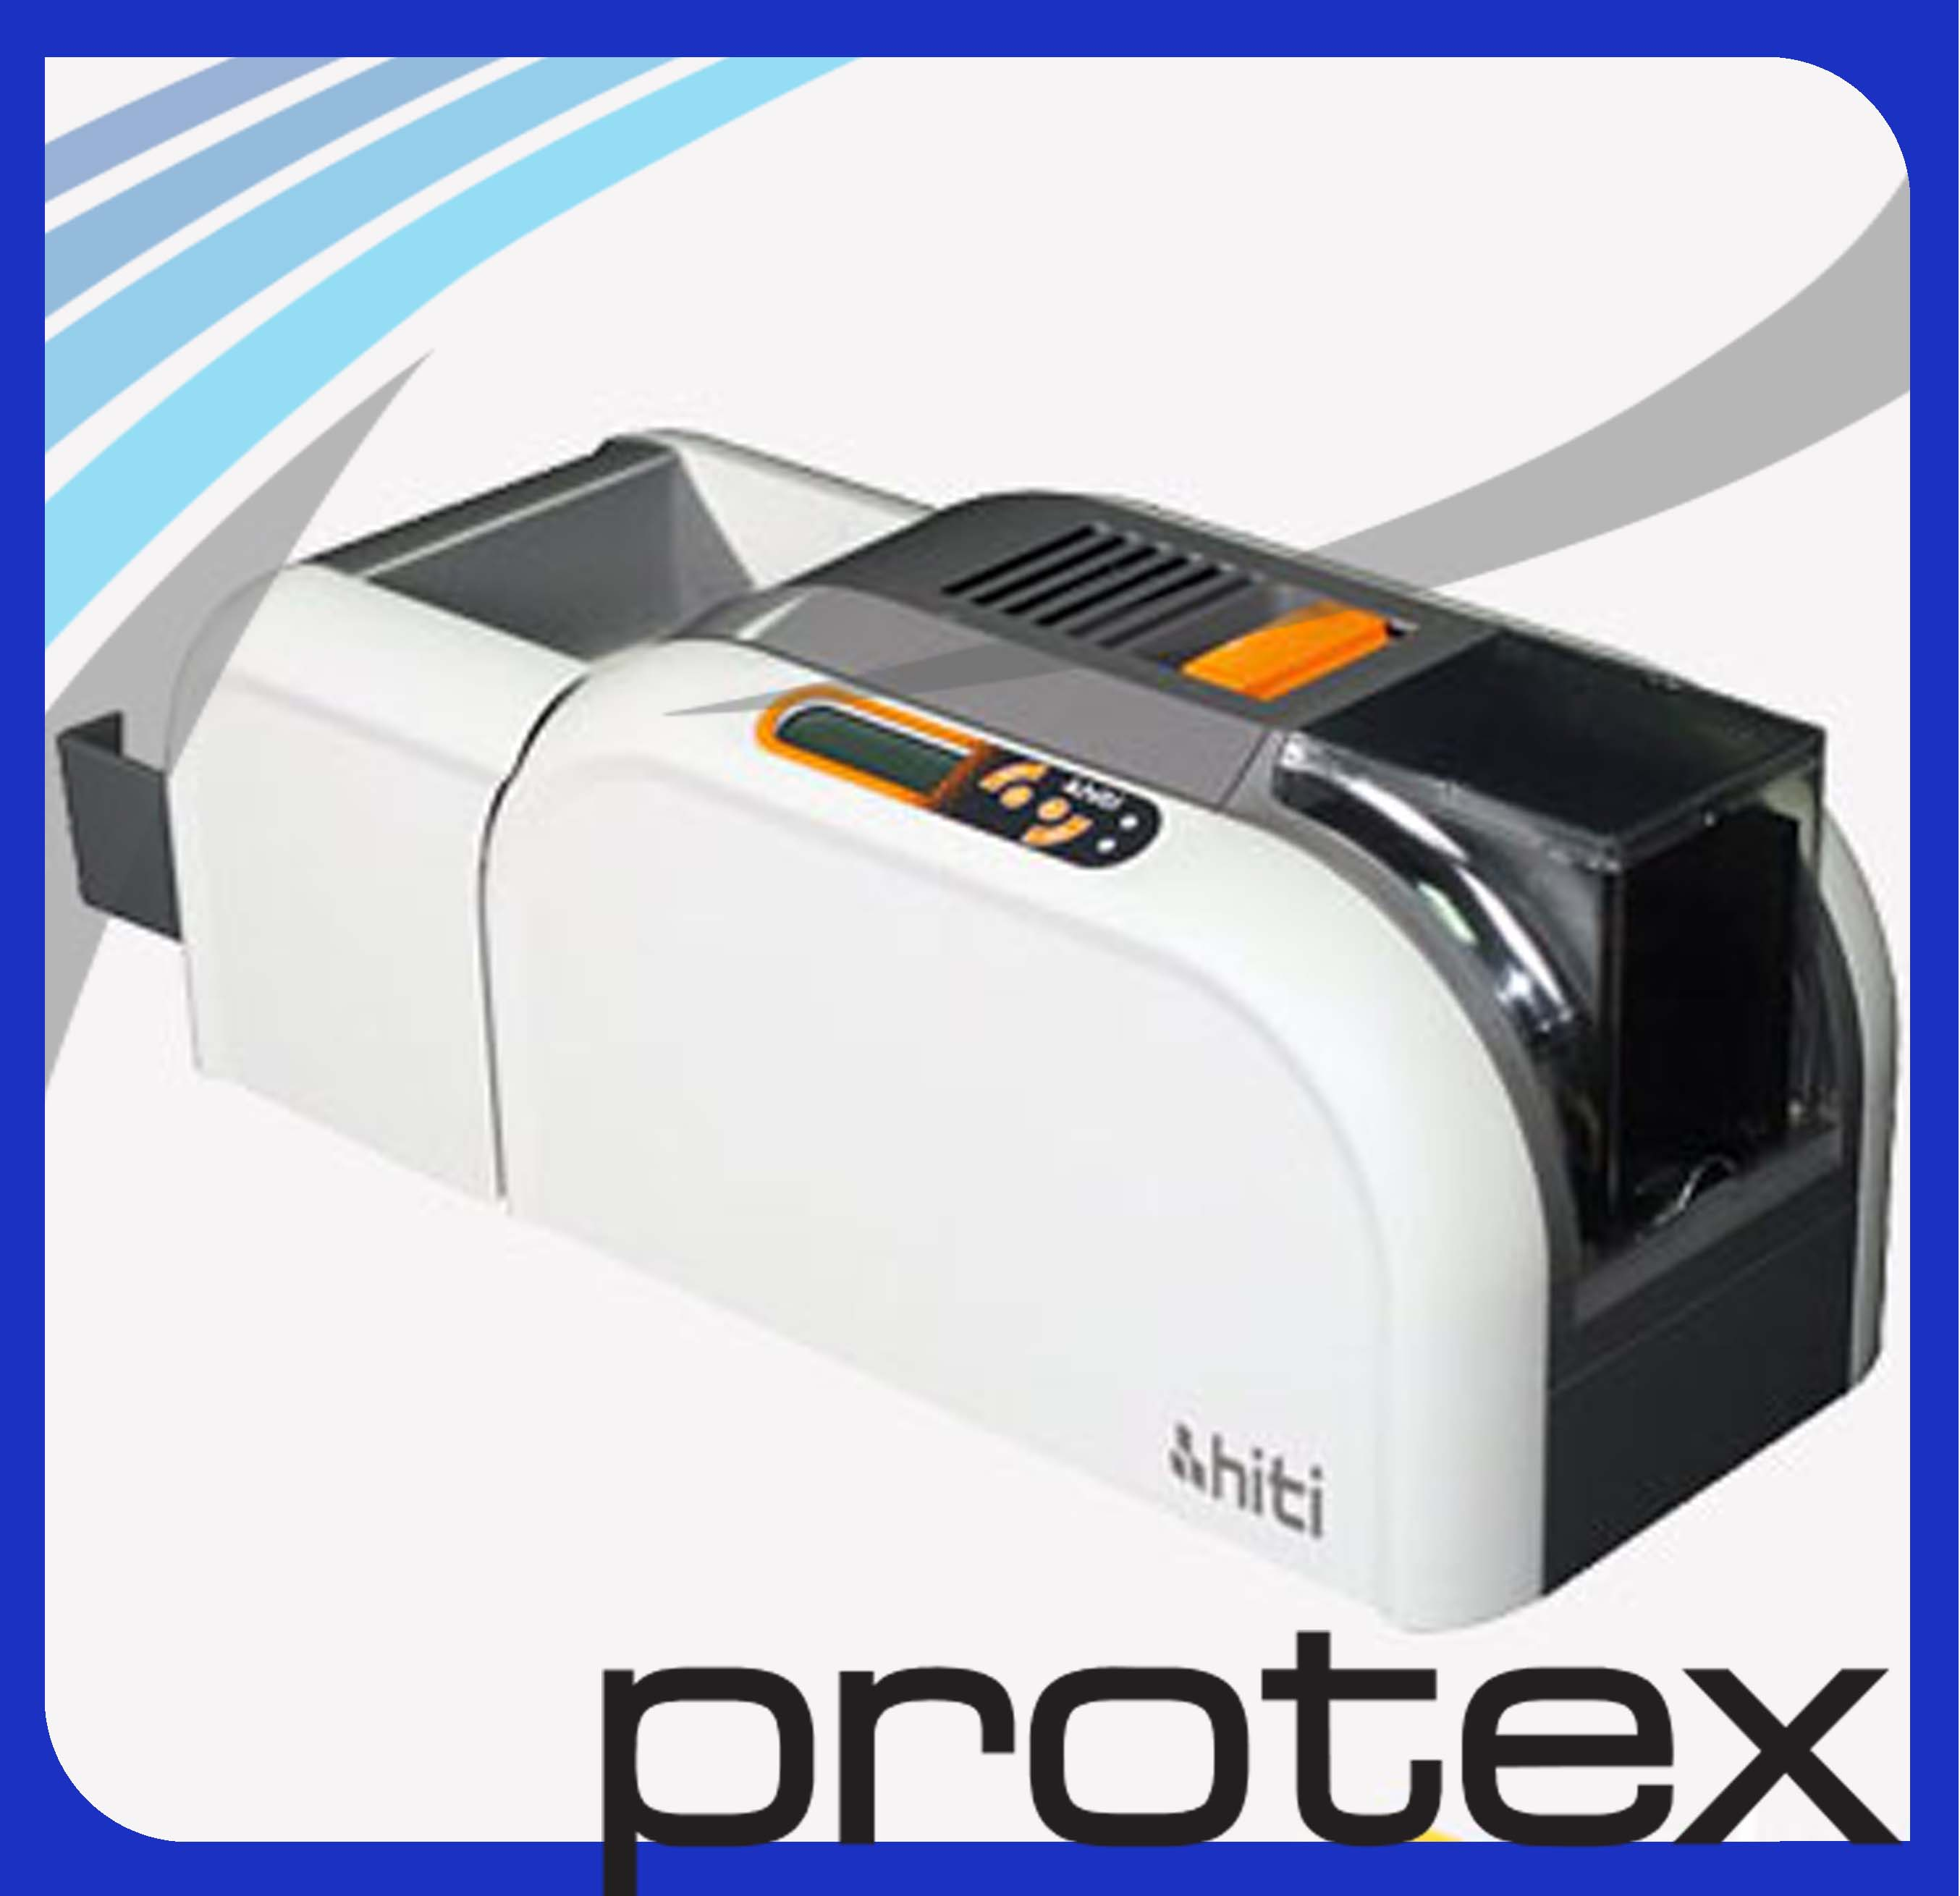 Rfid Card Printer Rfid Card Printer Suppliers and Manufacturers